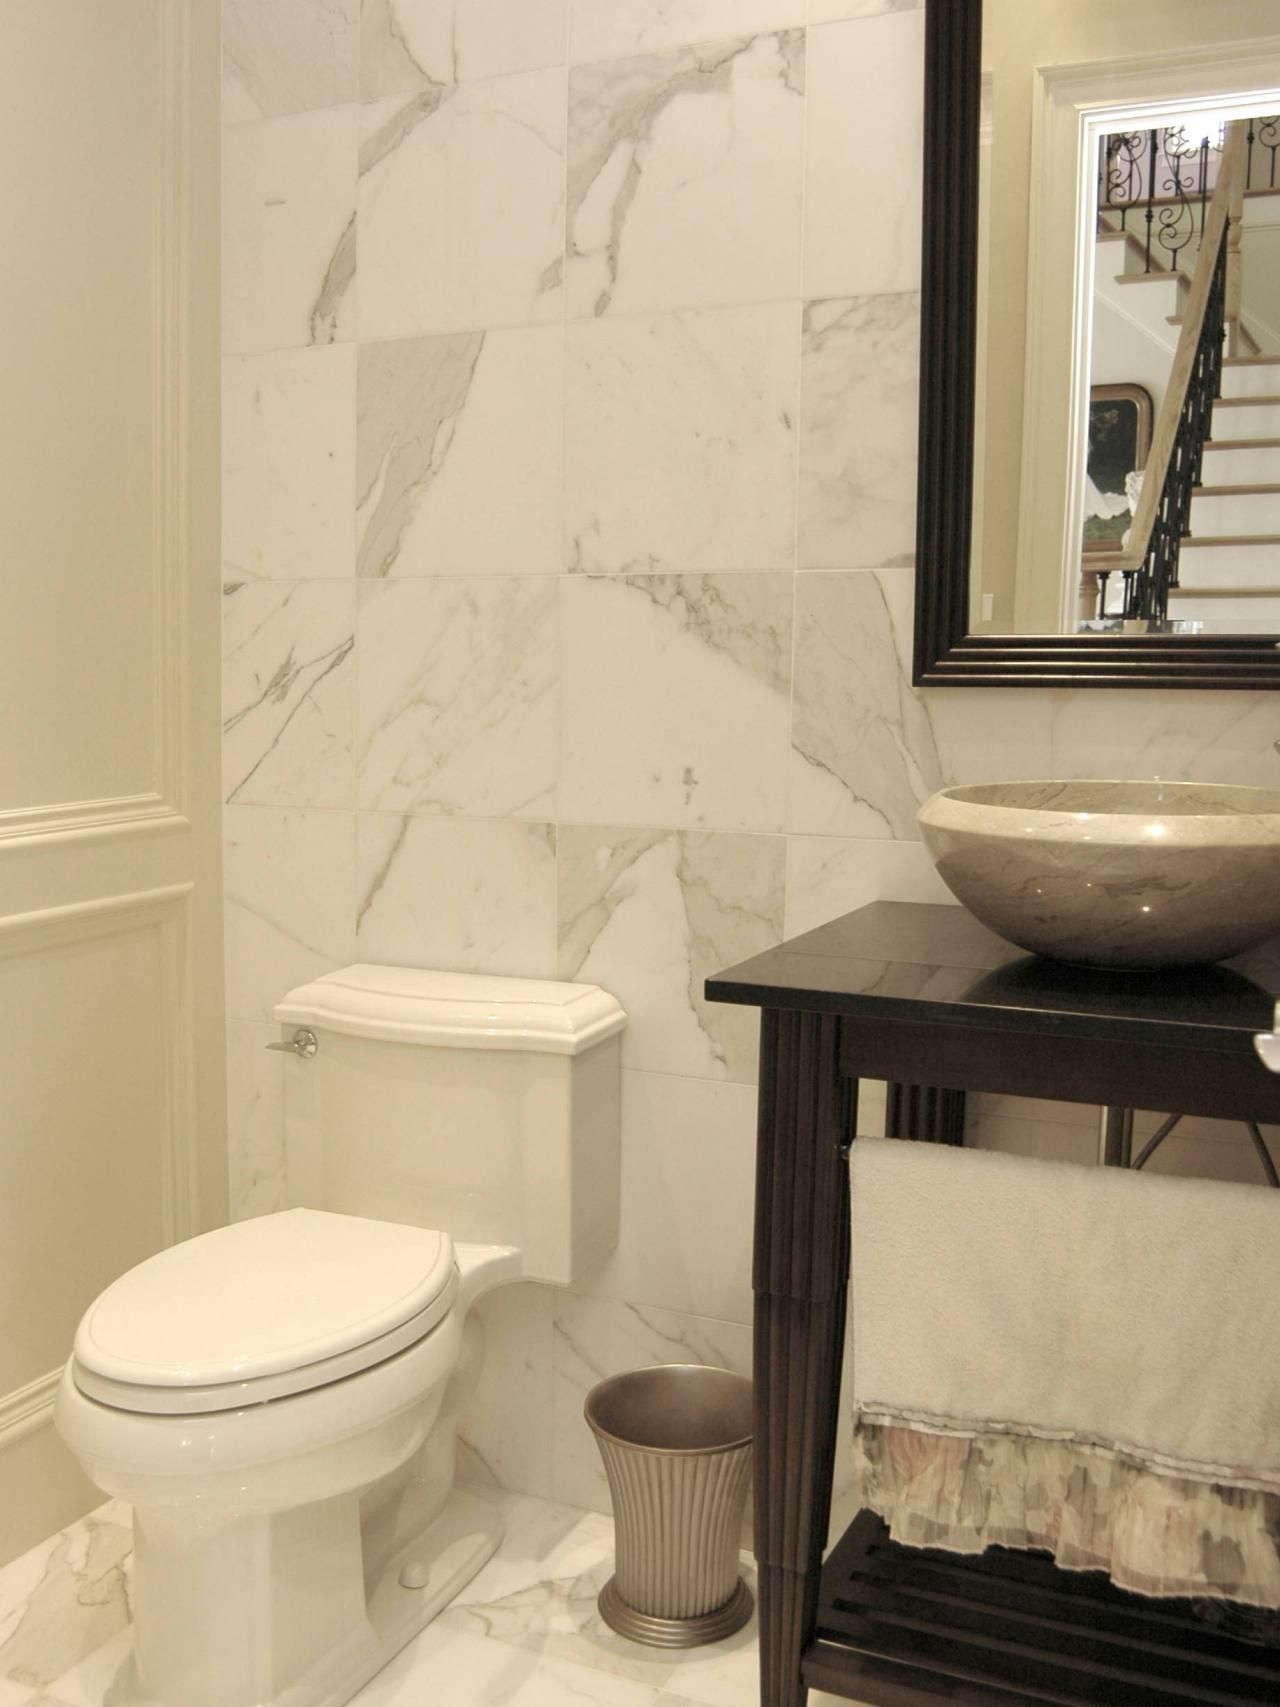 Trimmed In White, This Powder Room Is Accented With Rich